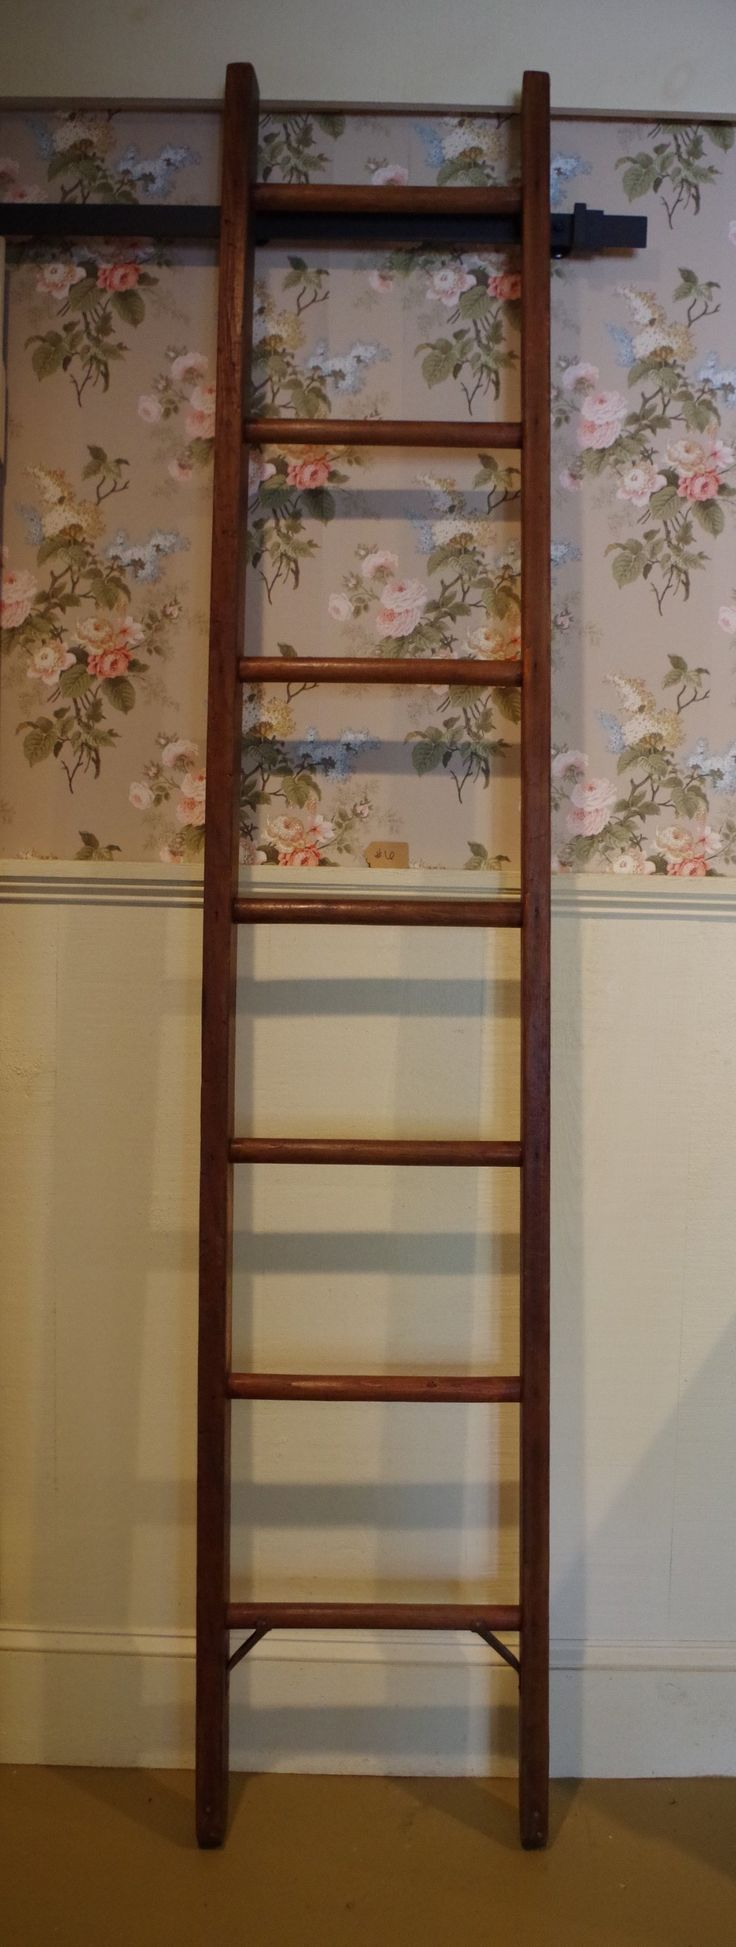 DIY Blanket Ladder Pottery Barn Knock Off (with video